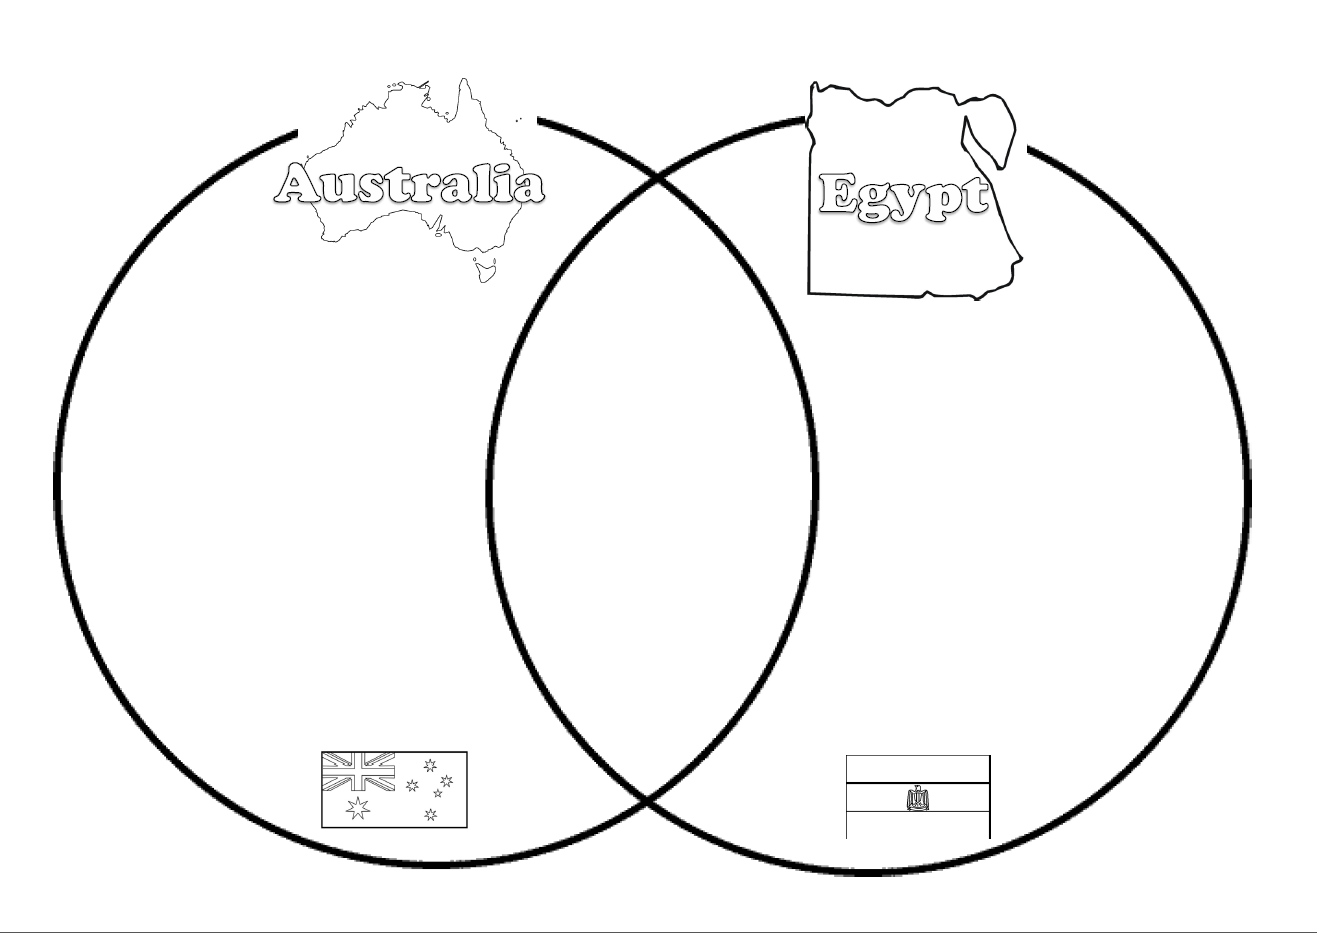 compare and contrast australia with africa and south